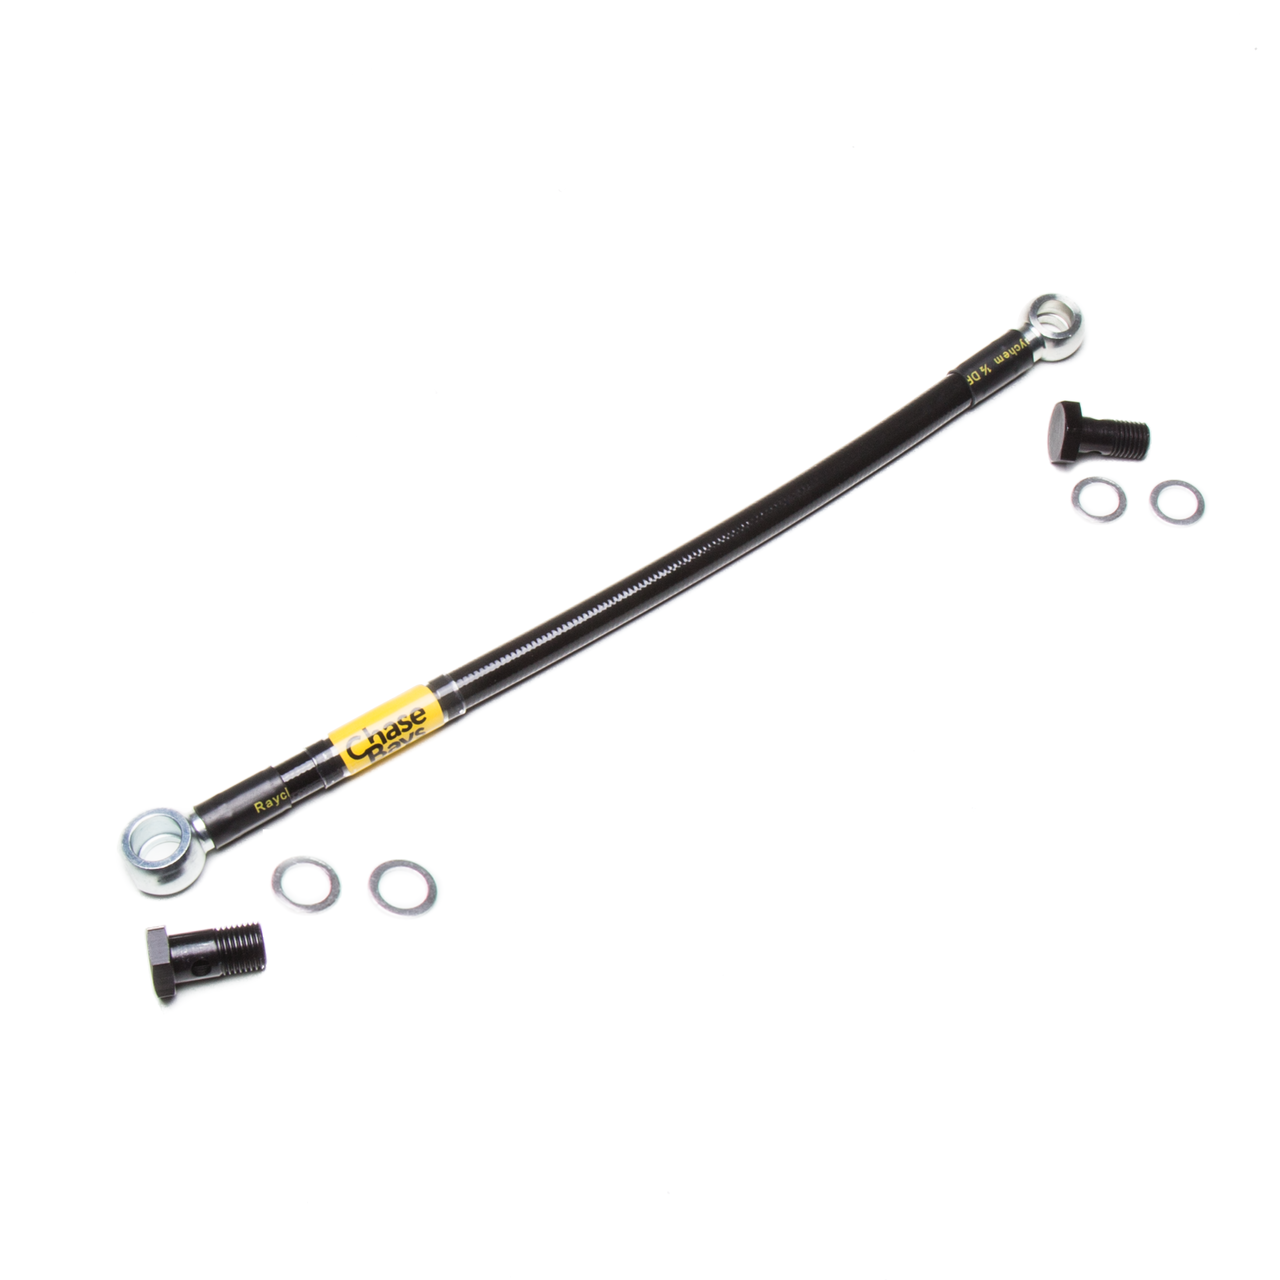 Chase Bays Vanos Oil Line - BMW M50 | M52 | M54 | S50 | S52 with S54 or Euro Housing